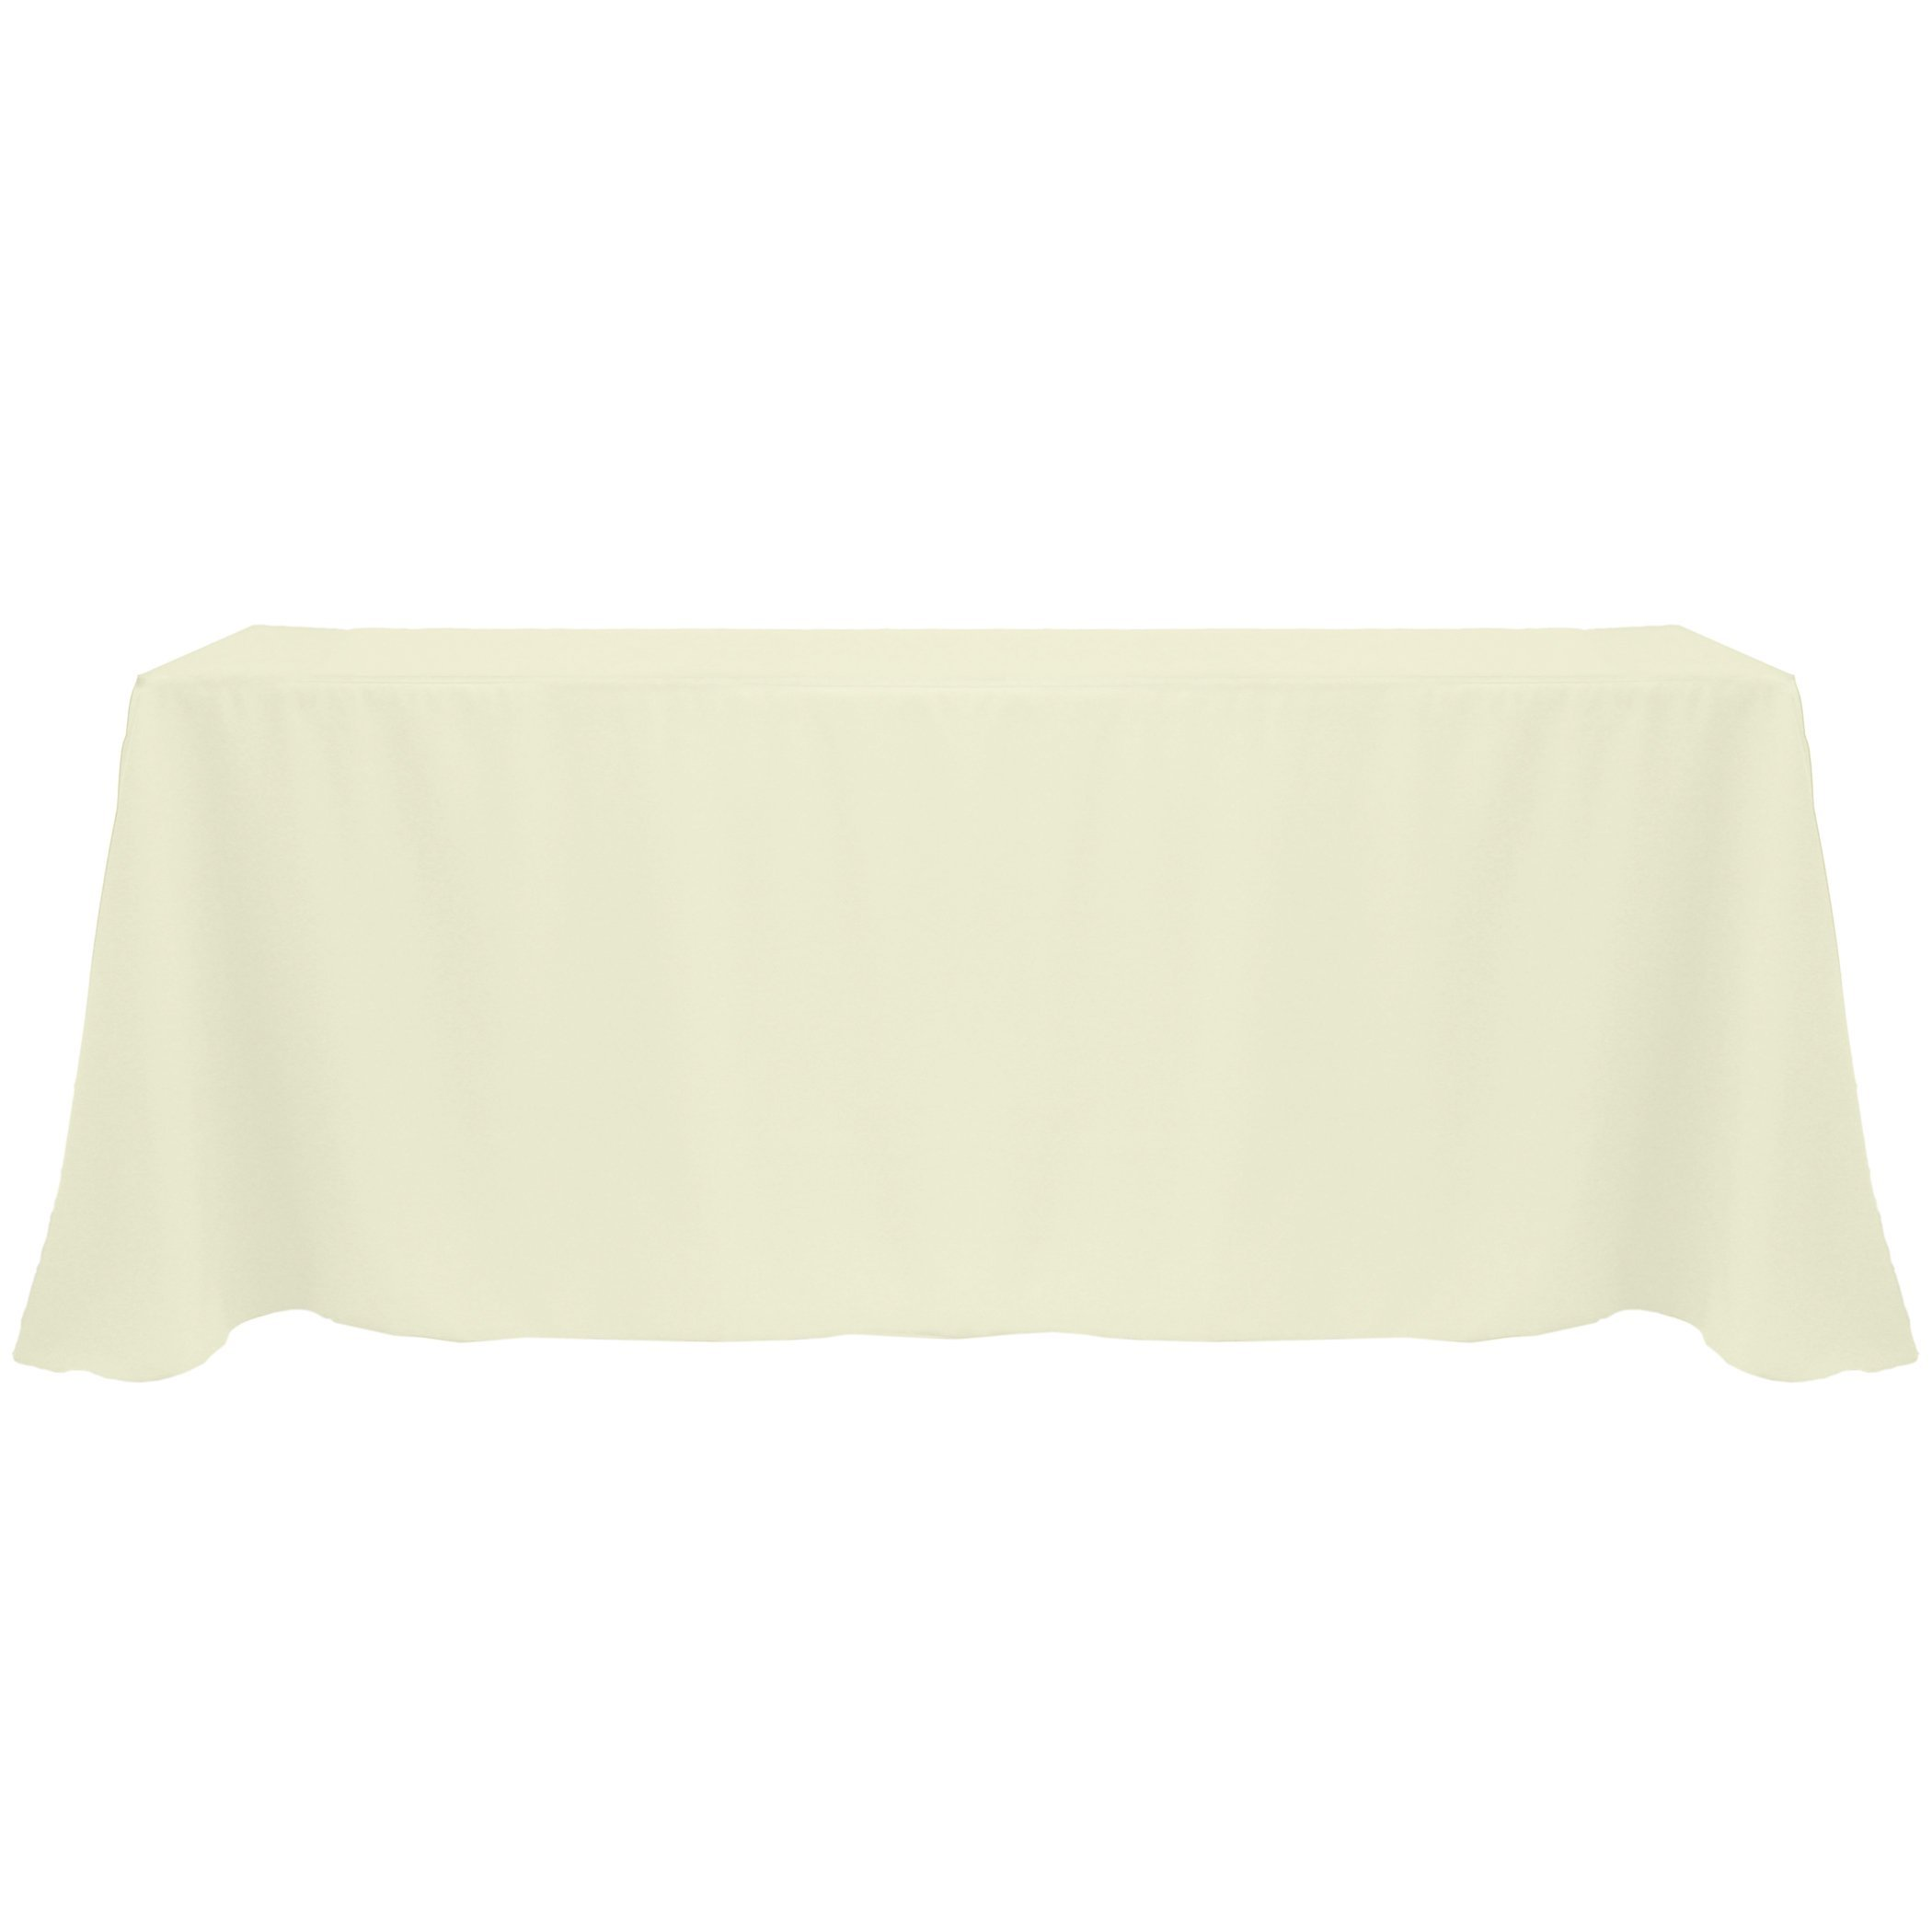 Ultimate Textile (5 Pack) 90 x 132-Inch Rectangular Polyester Linen Tablecloth with Rounded Corners - for Wedding, Restaurant or Banquet use, Ivory Cream by Ultimate Textile (Image #2)